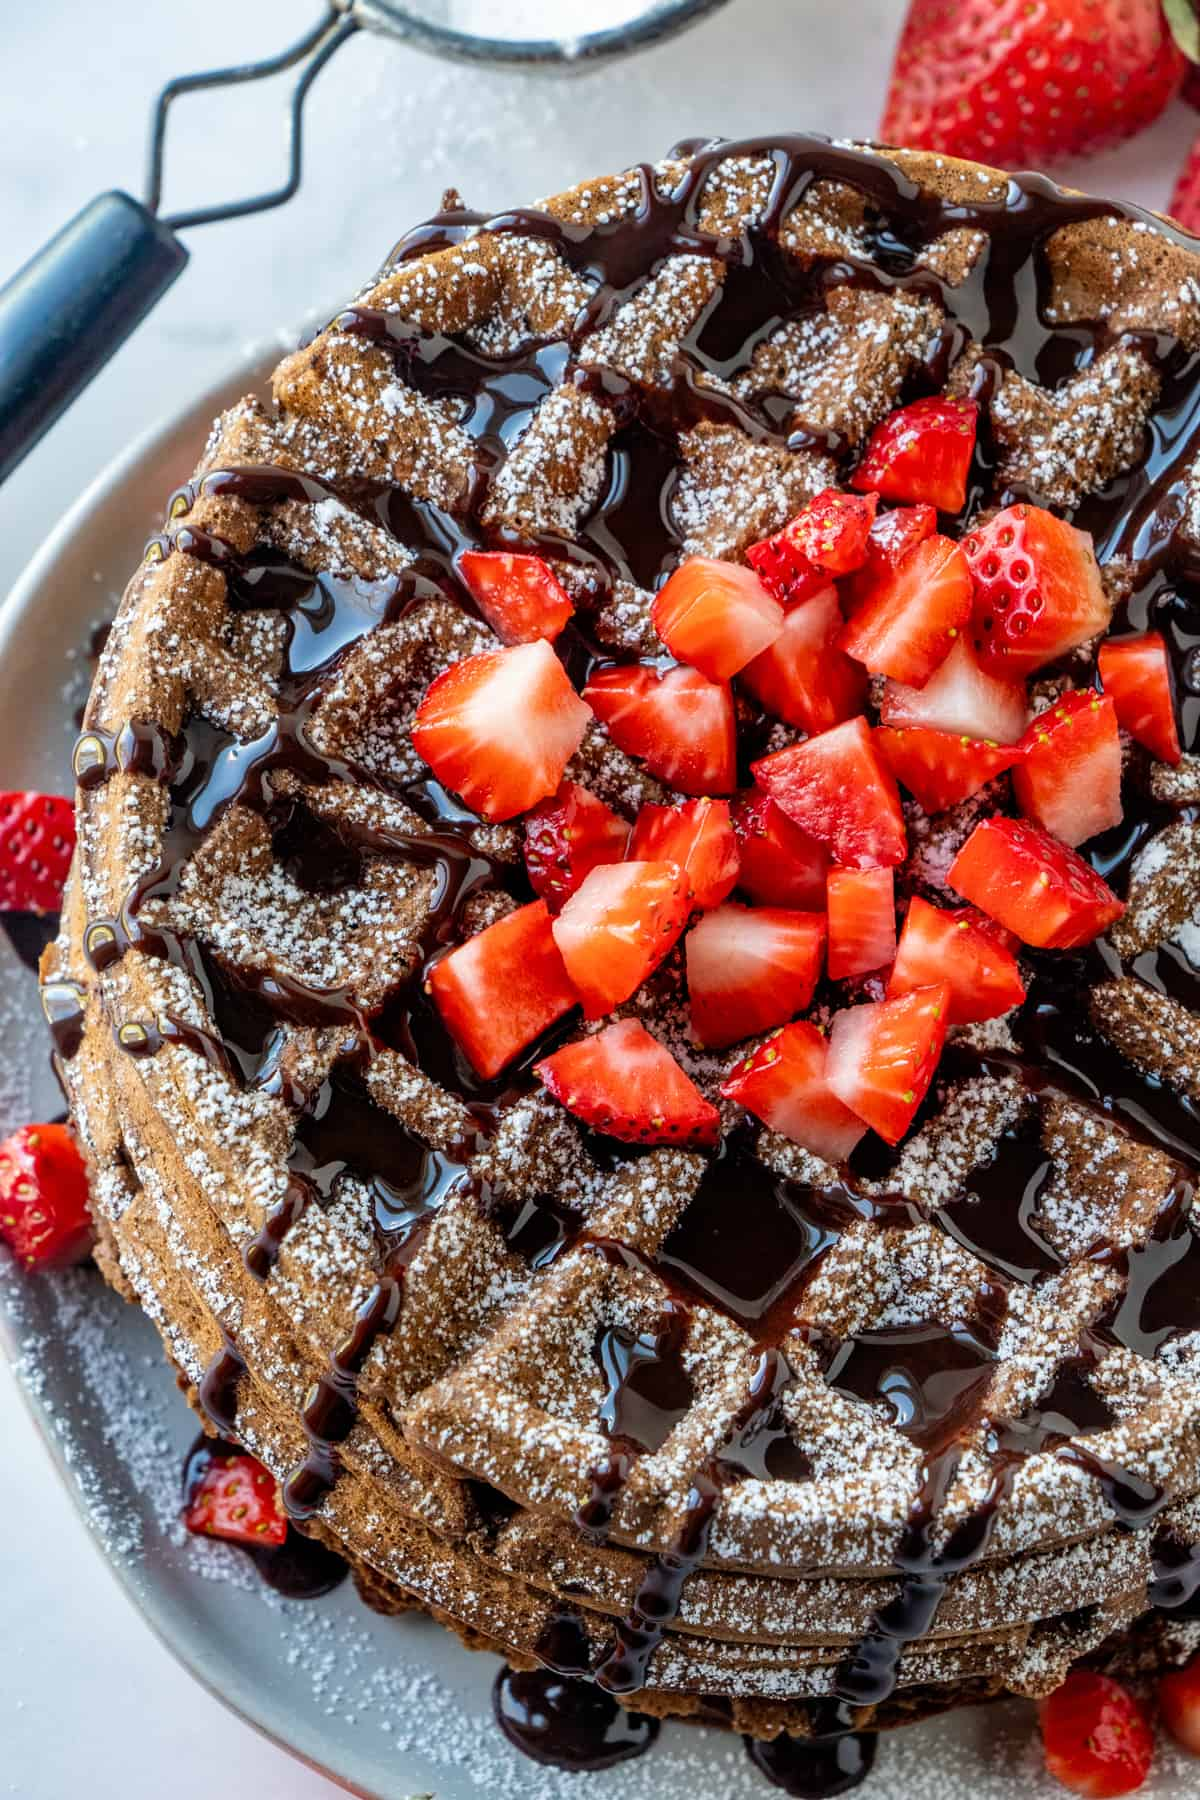 Overhead photo of chocolate waffles toped with powdered sugar, chocolate syrup and strawberries